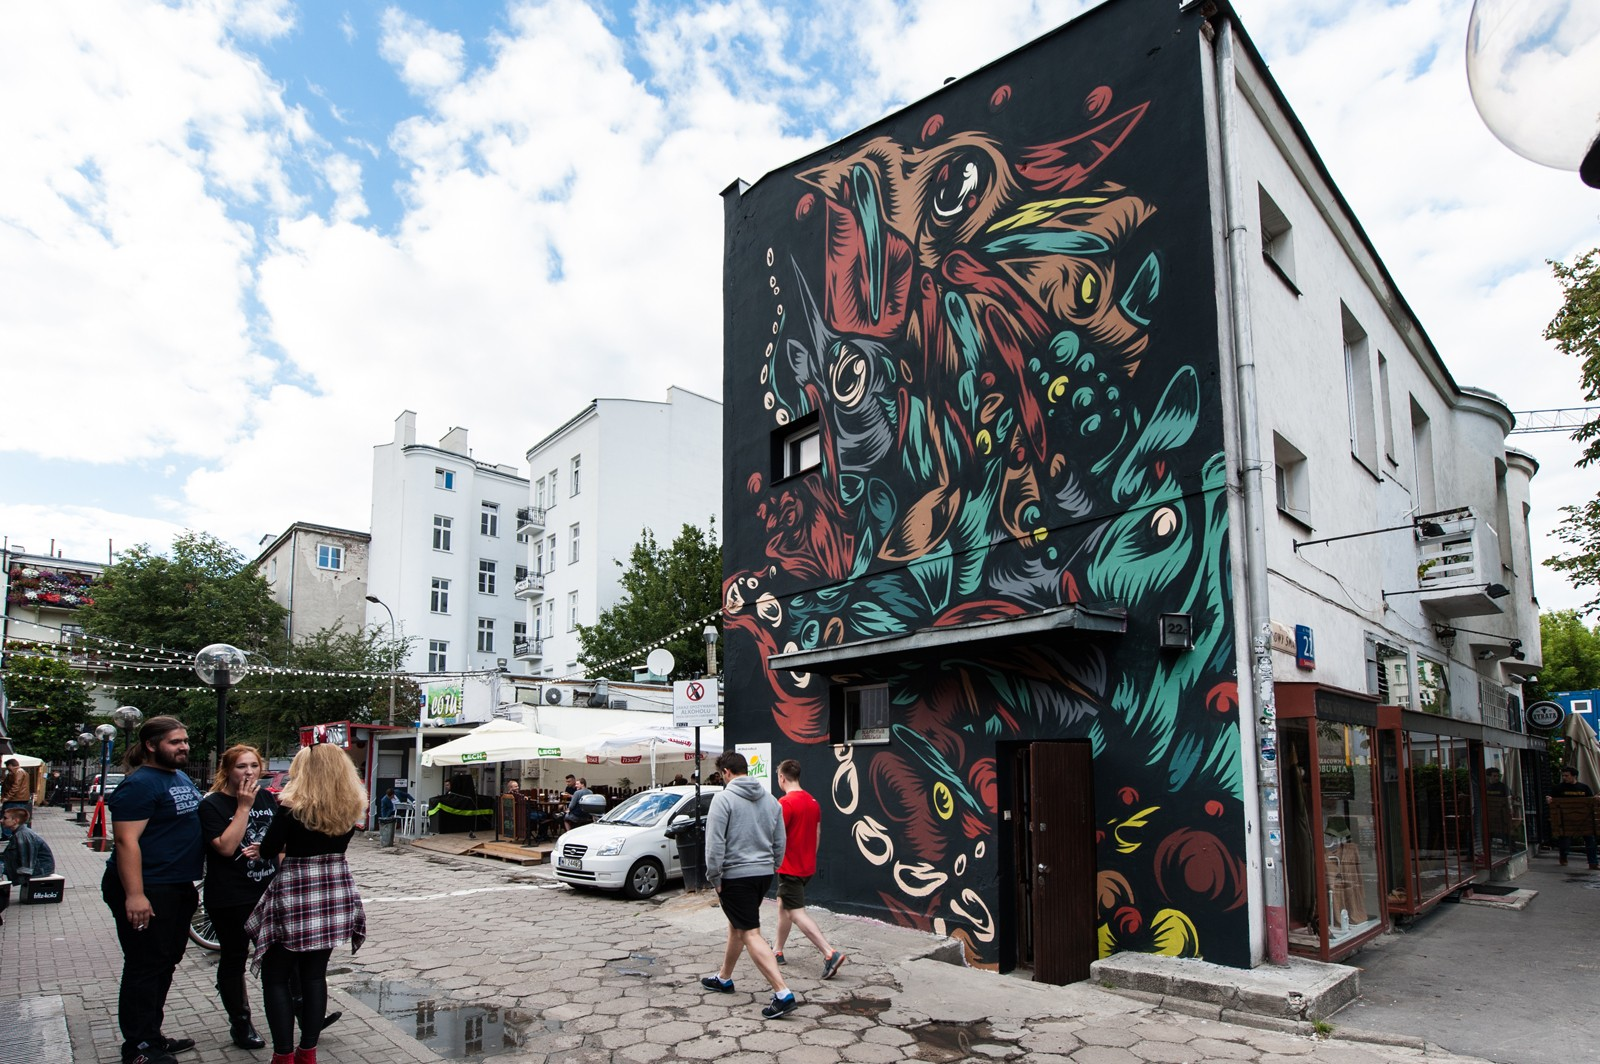 Murals by Swanski at Warsaw's pavilions for Sprite on 22 Nowy Swiat Street | #RFRSH_CITY | Portfolio